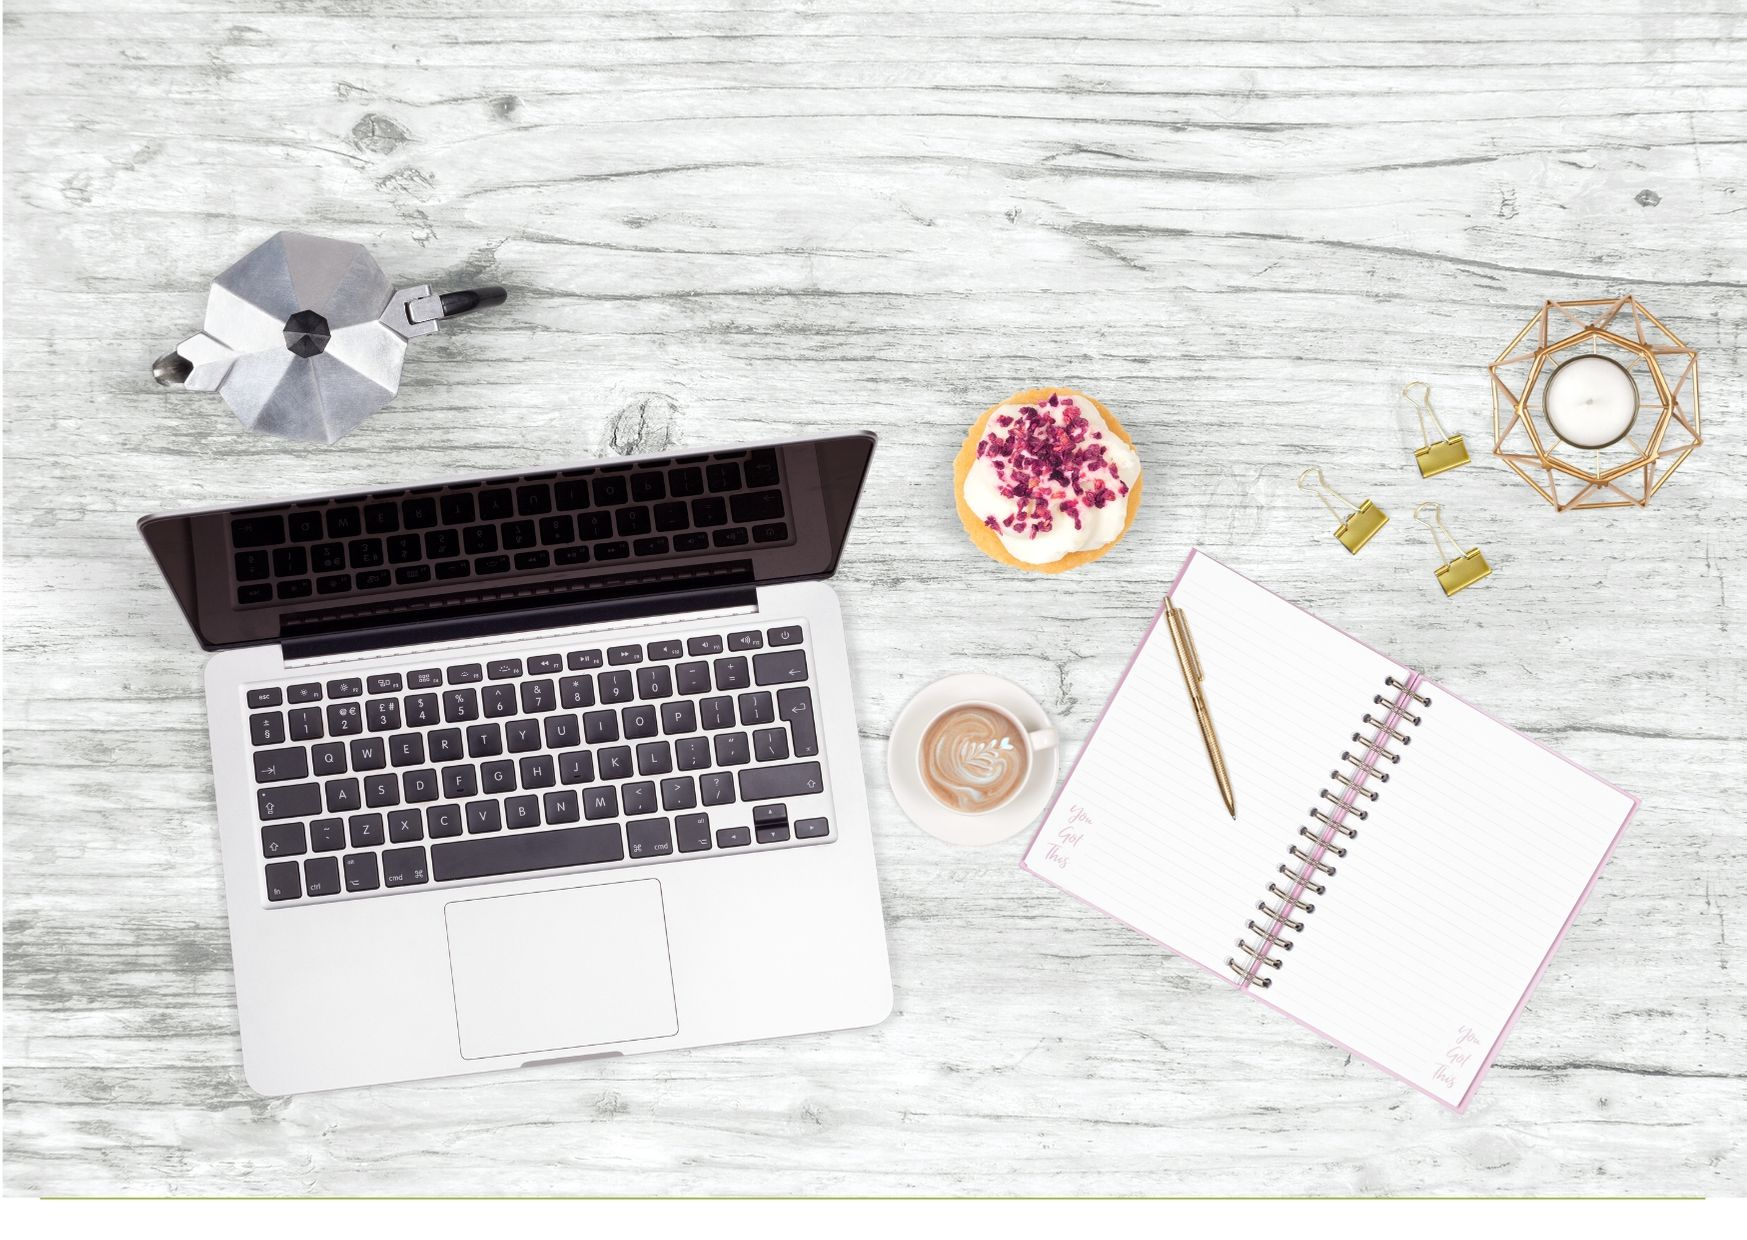 5 tips to create amazing flat-lays for your blog posts and social networks